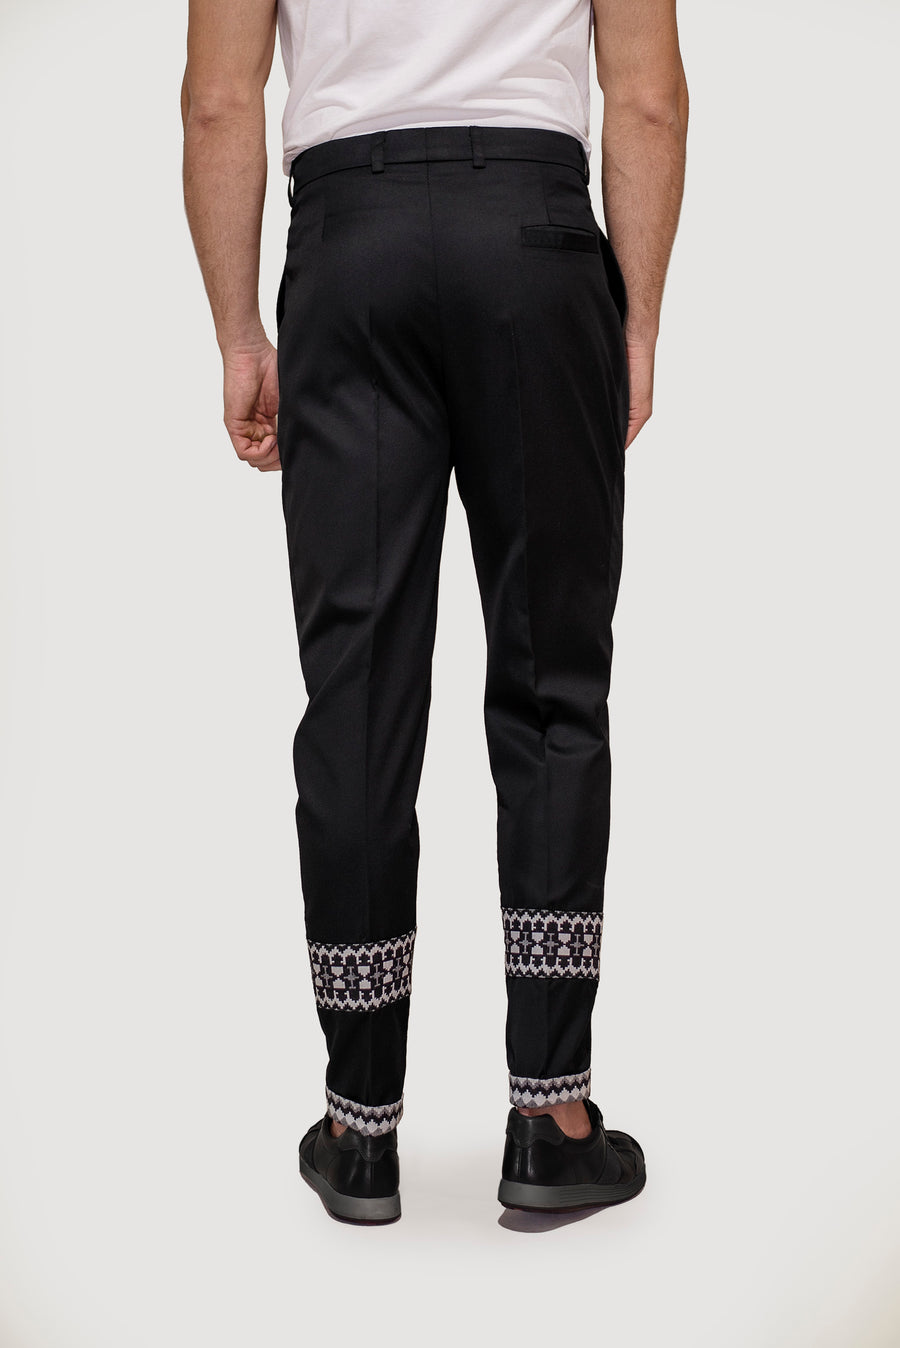 A8 Classic Trousers